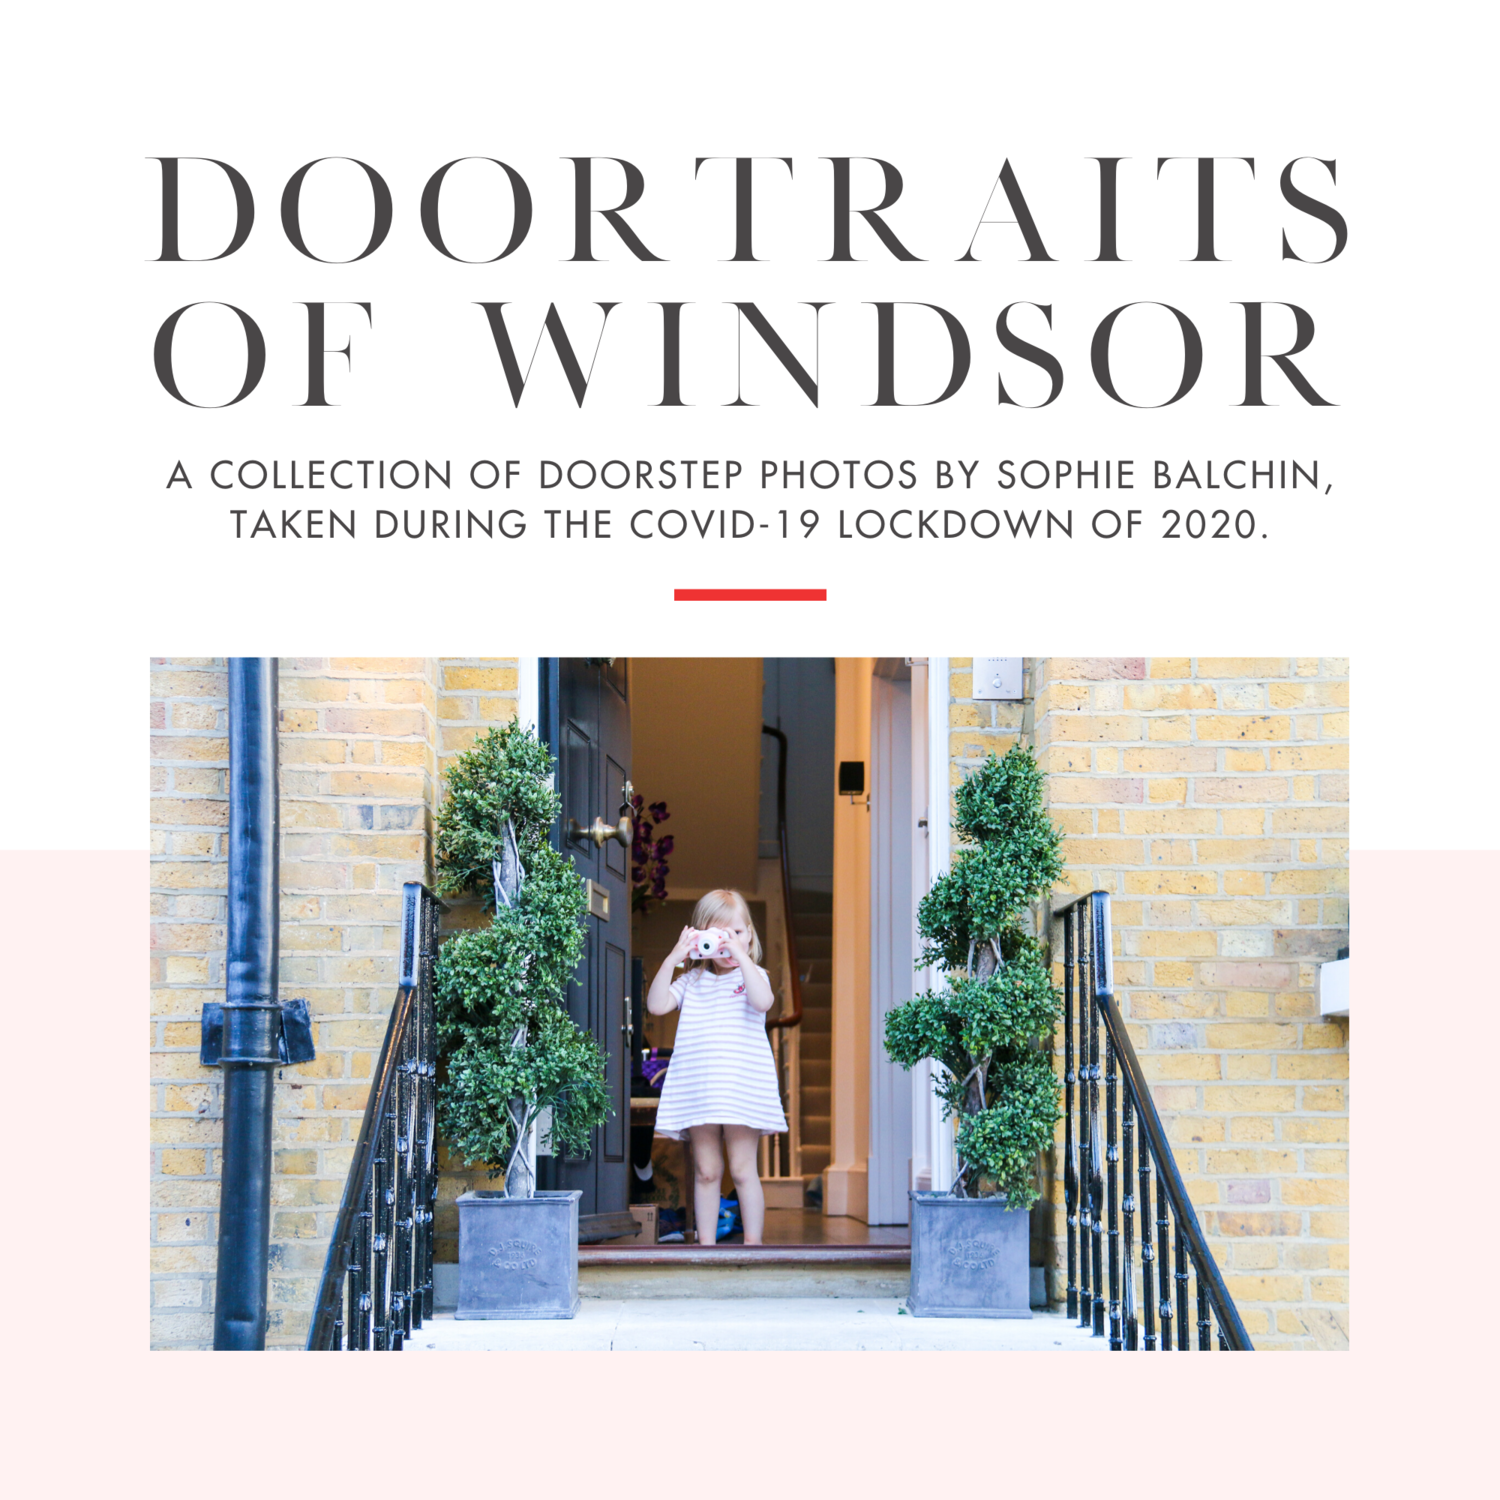 Doortraits of Windsor